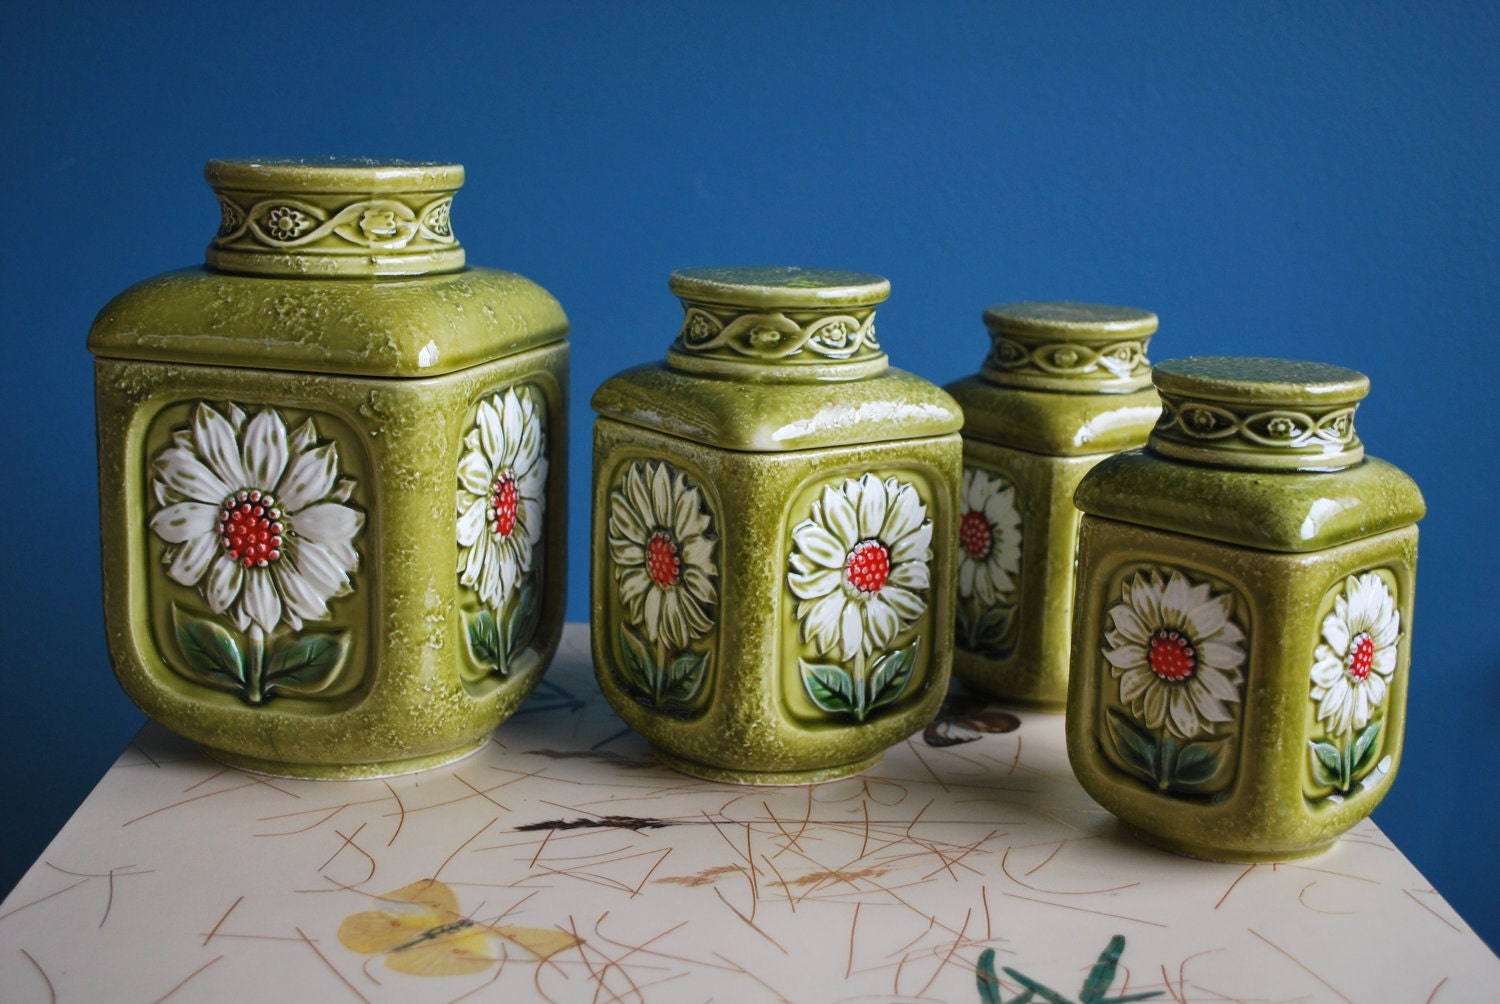 Vintage Ceramic Canister Set With Daisies By Sweetshopvintage